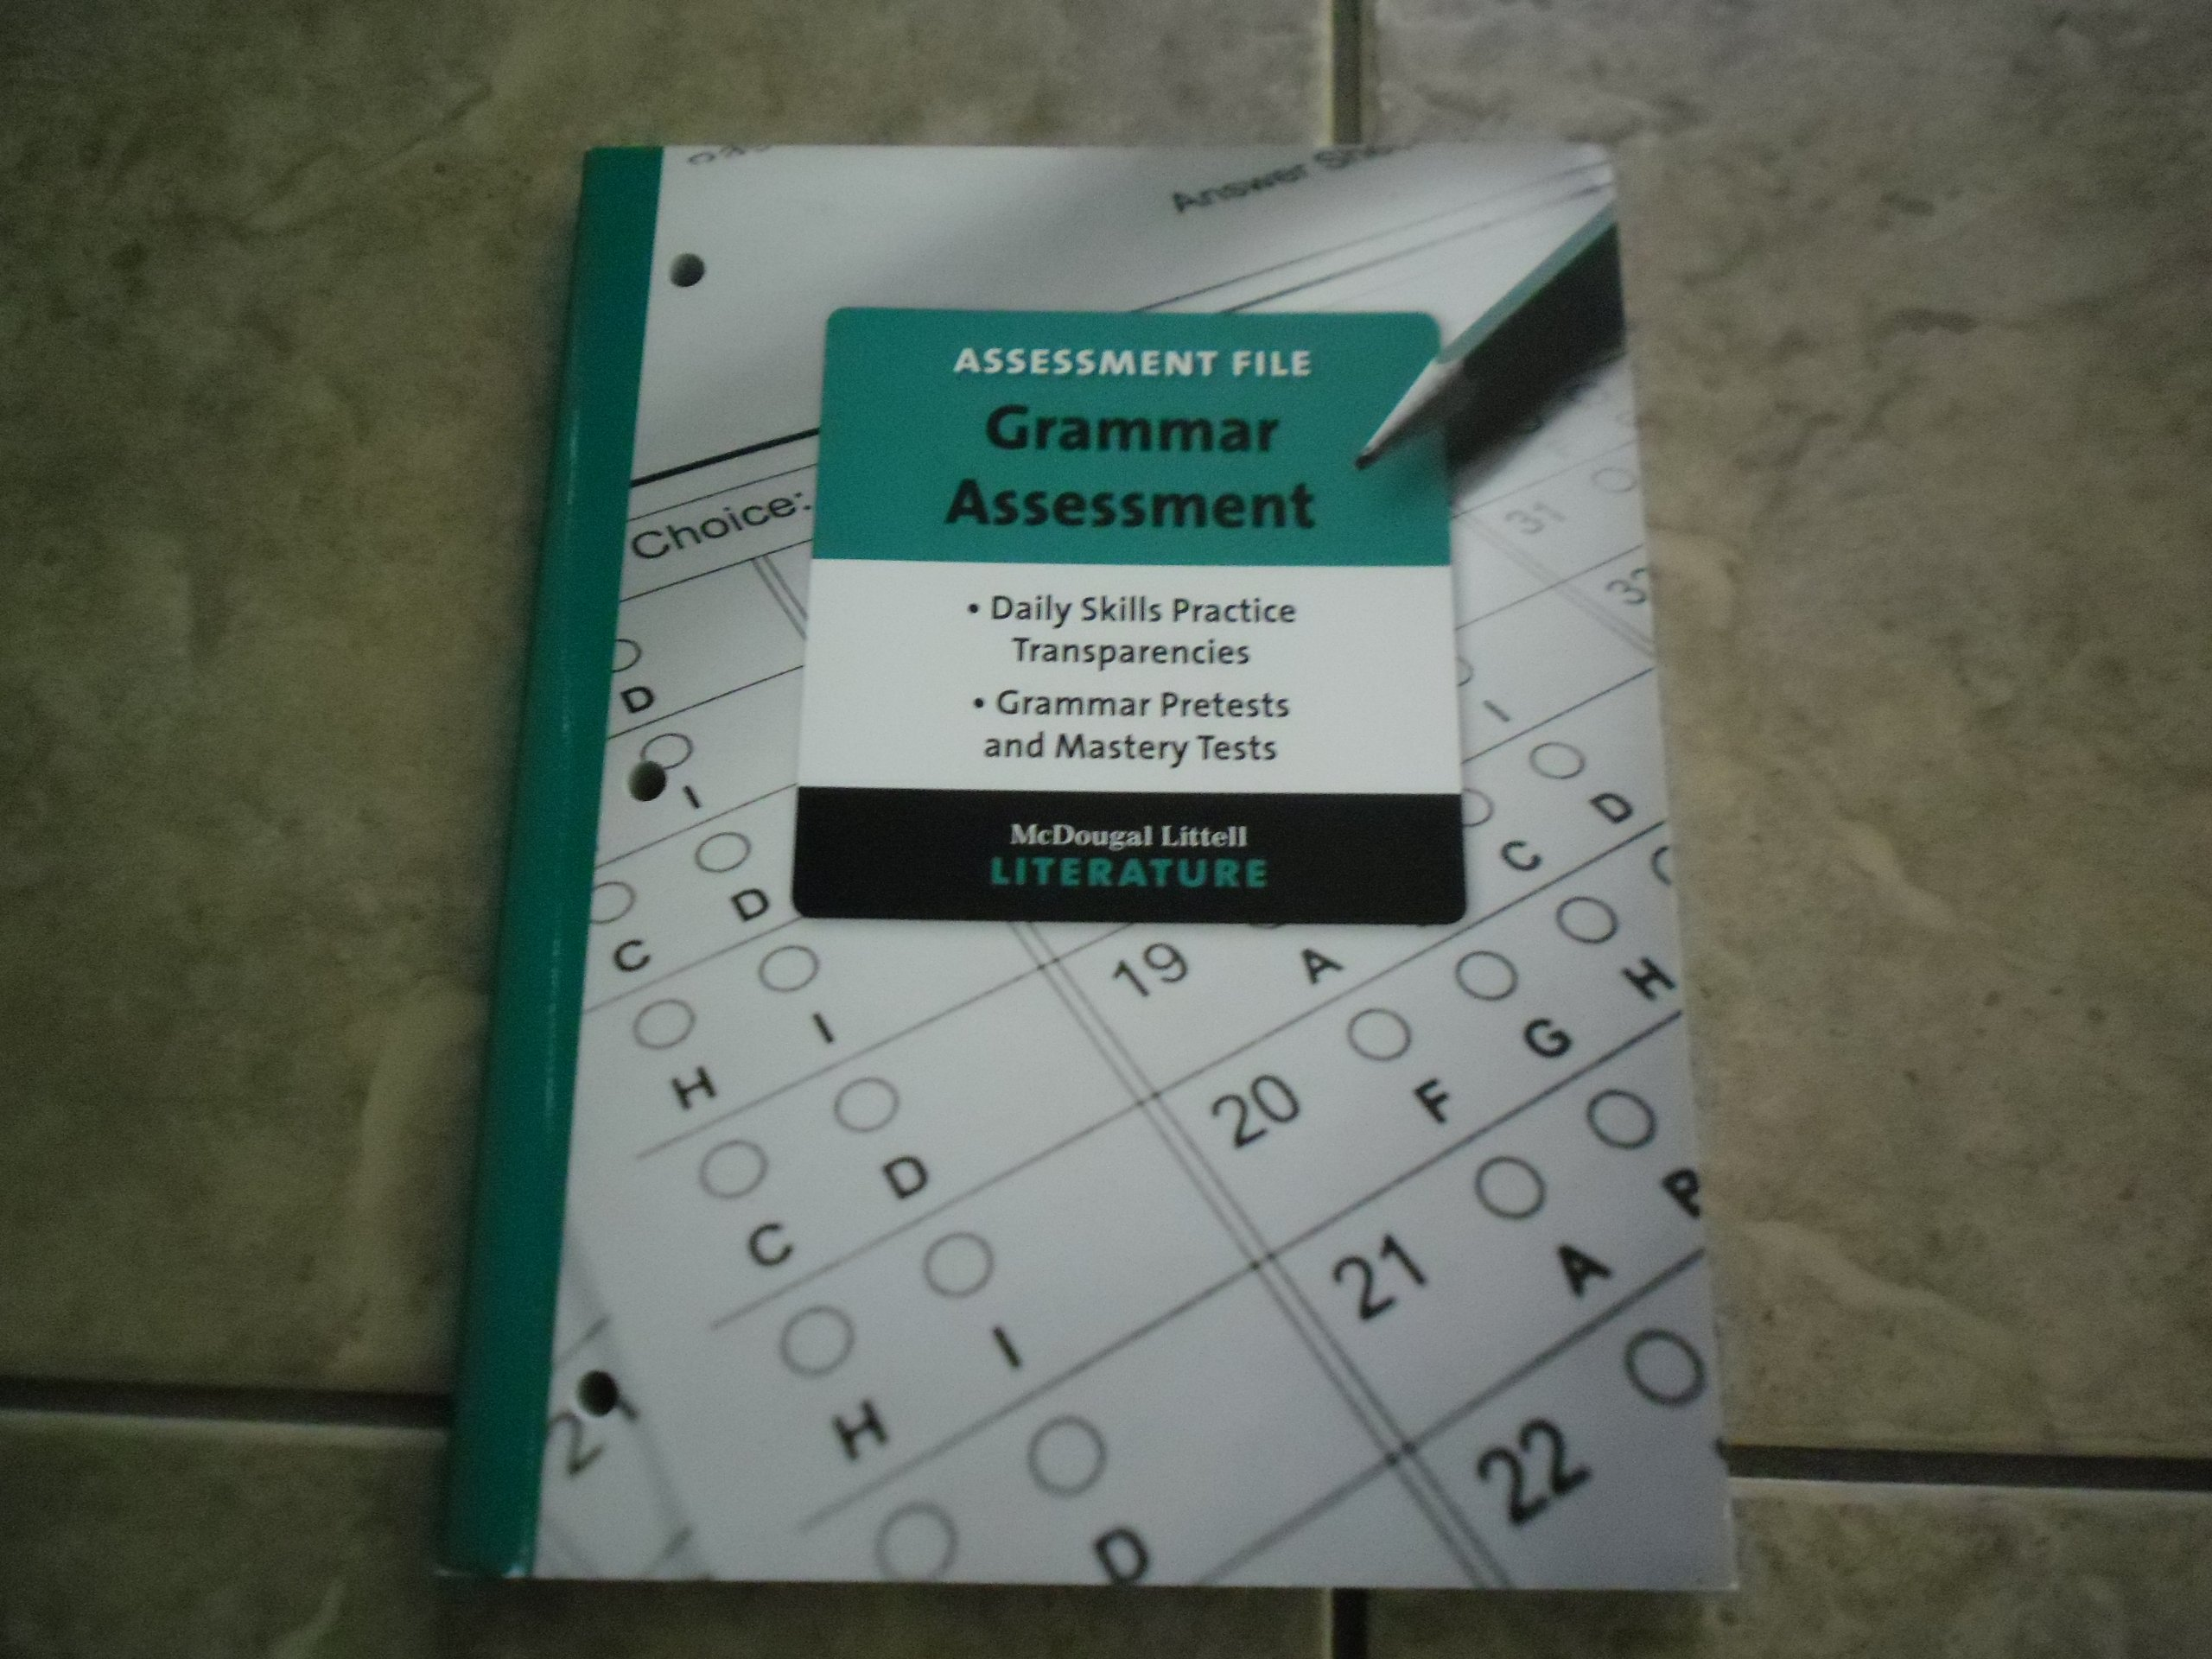 Download Assessment File,Grammar Assessment 8 pdf